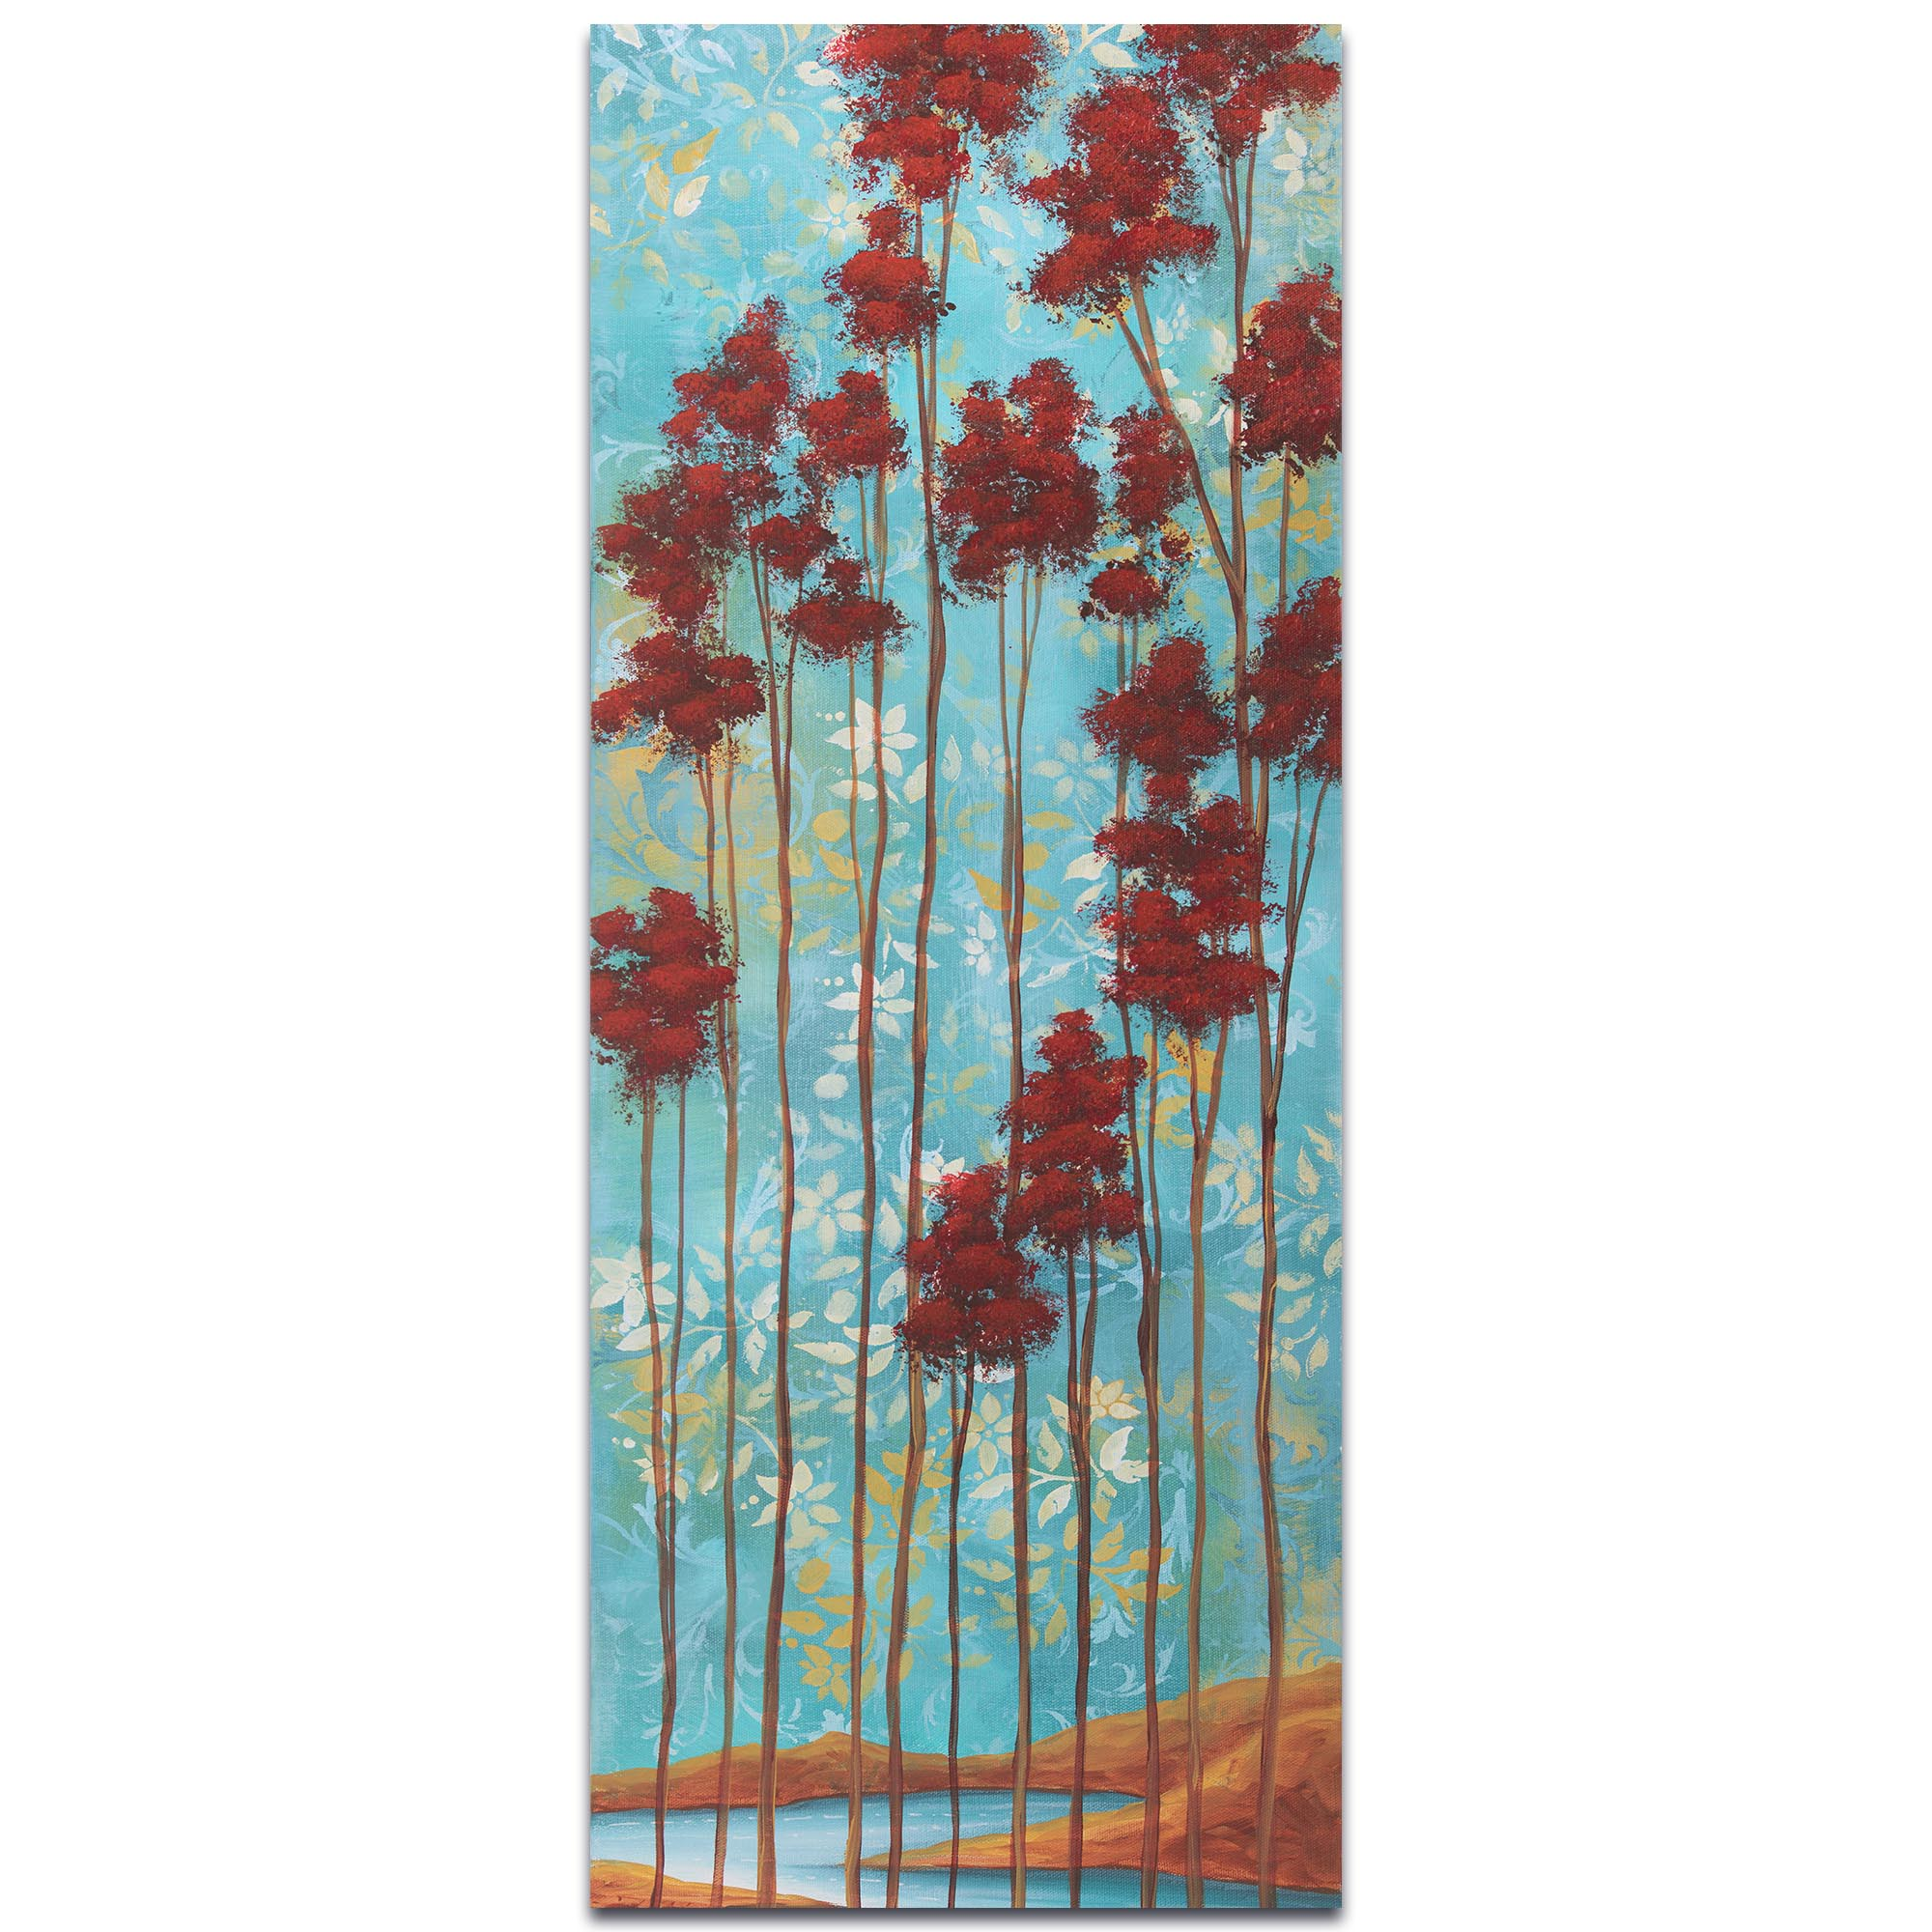 Abstract Tree Art 'Floating Dreams v1' - Landscape Painting on Metal or Acrylic